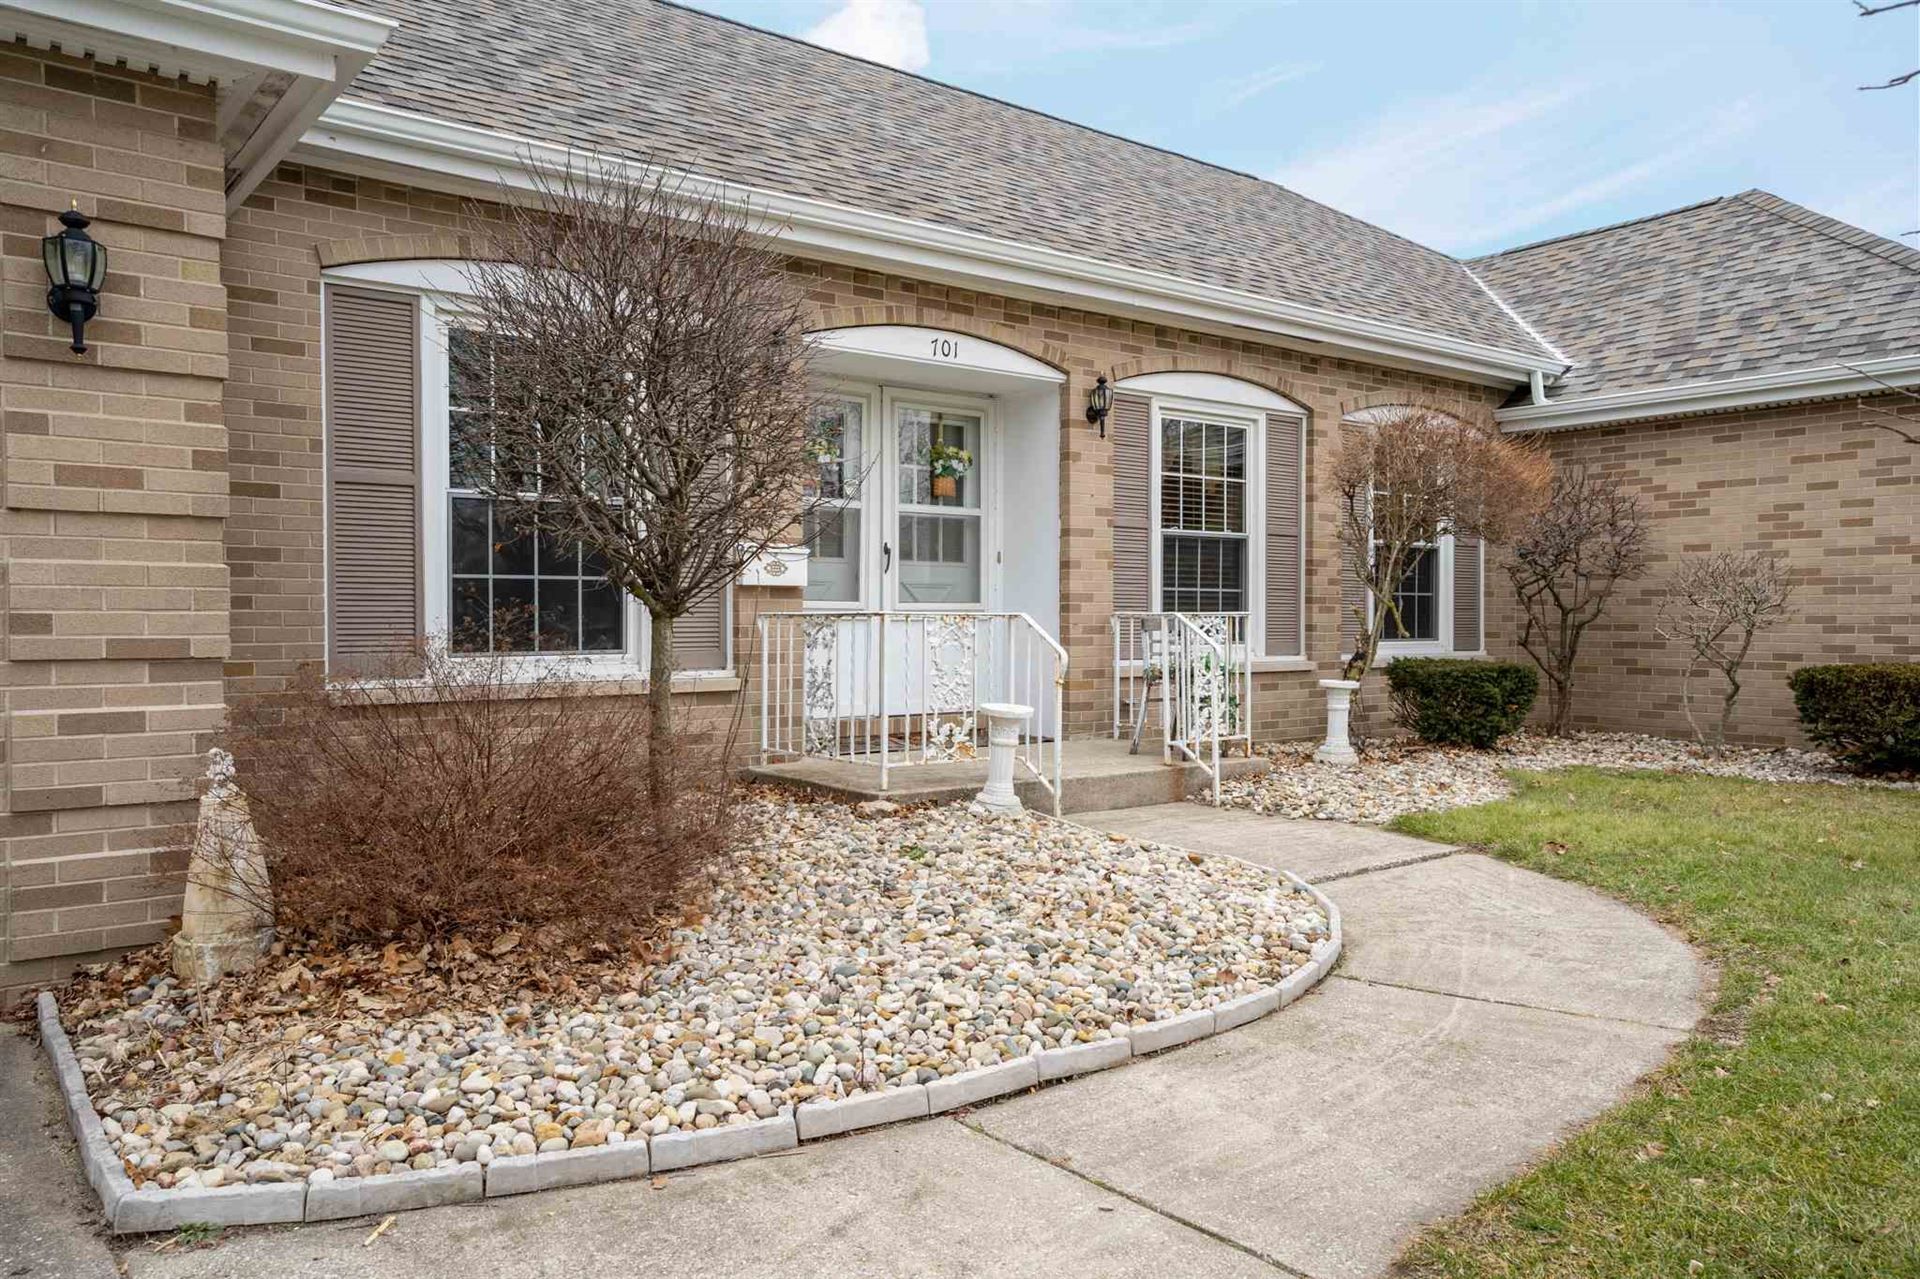 Photo of 701 S Kinder Drive, Syracuse, IN 46567 (MLS # 202004572)